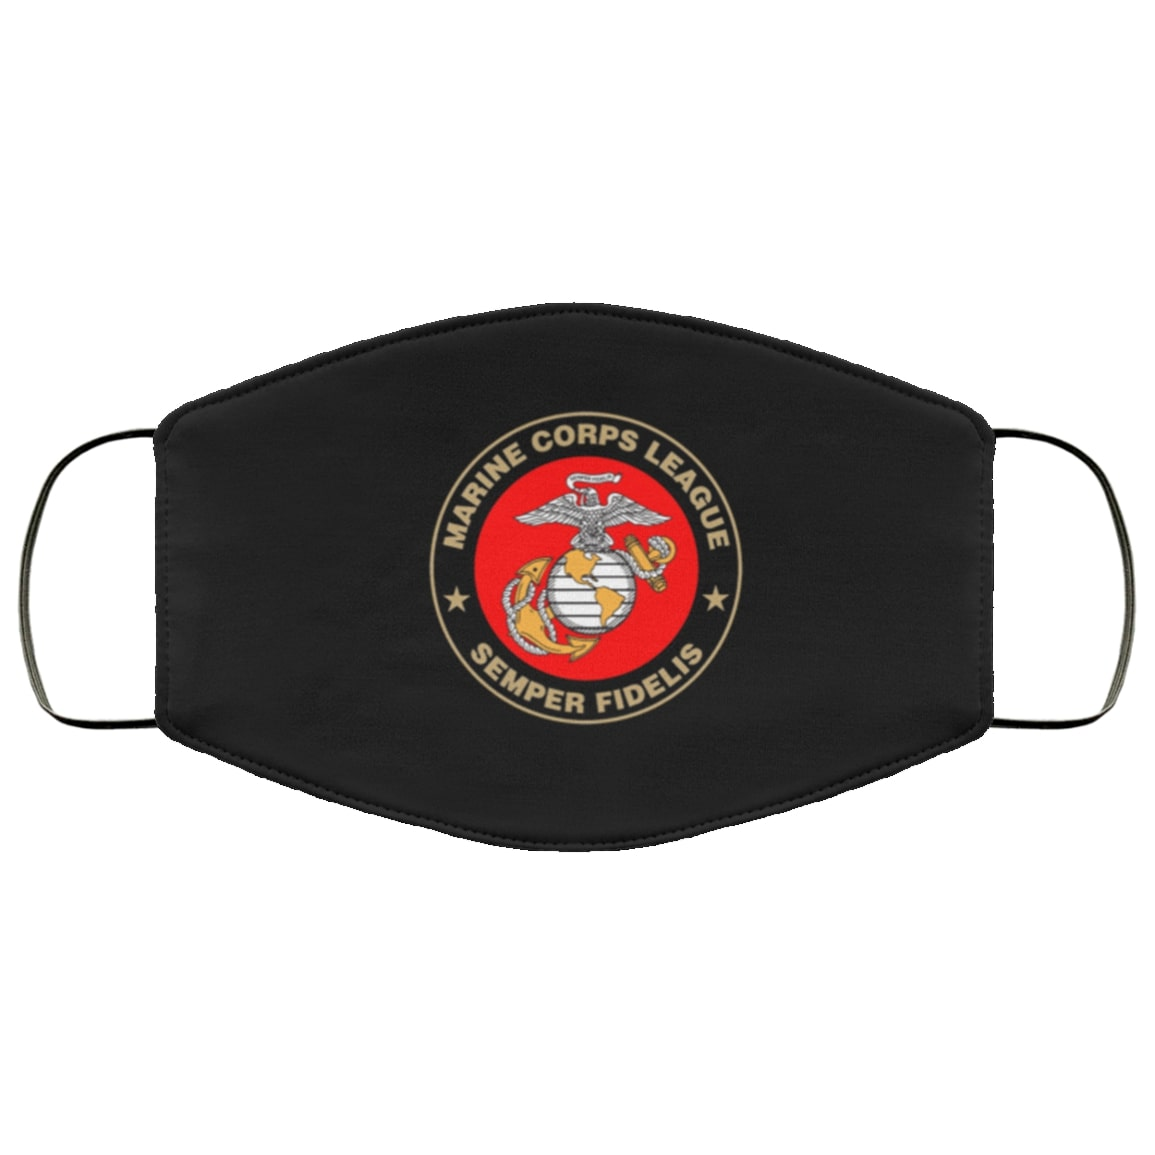 Marine corps league semper fidelis all over printed face mask 4